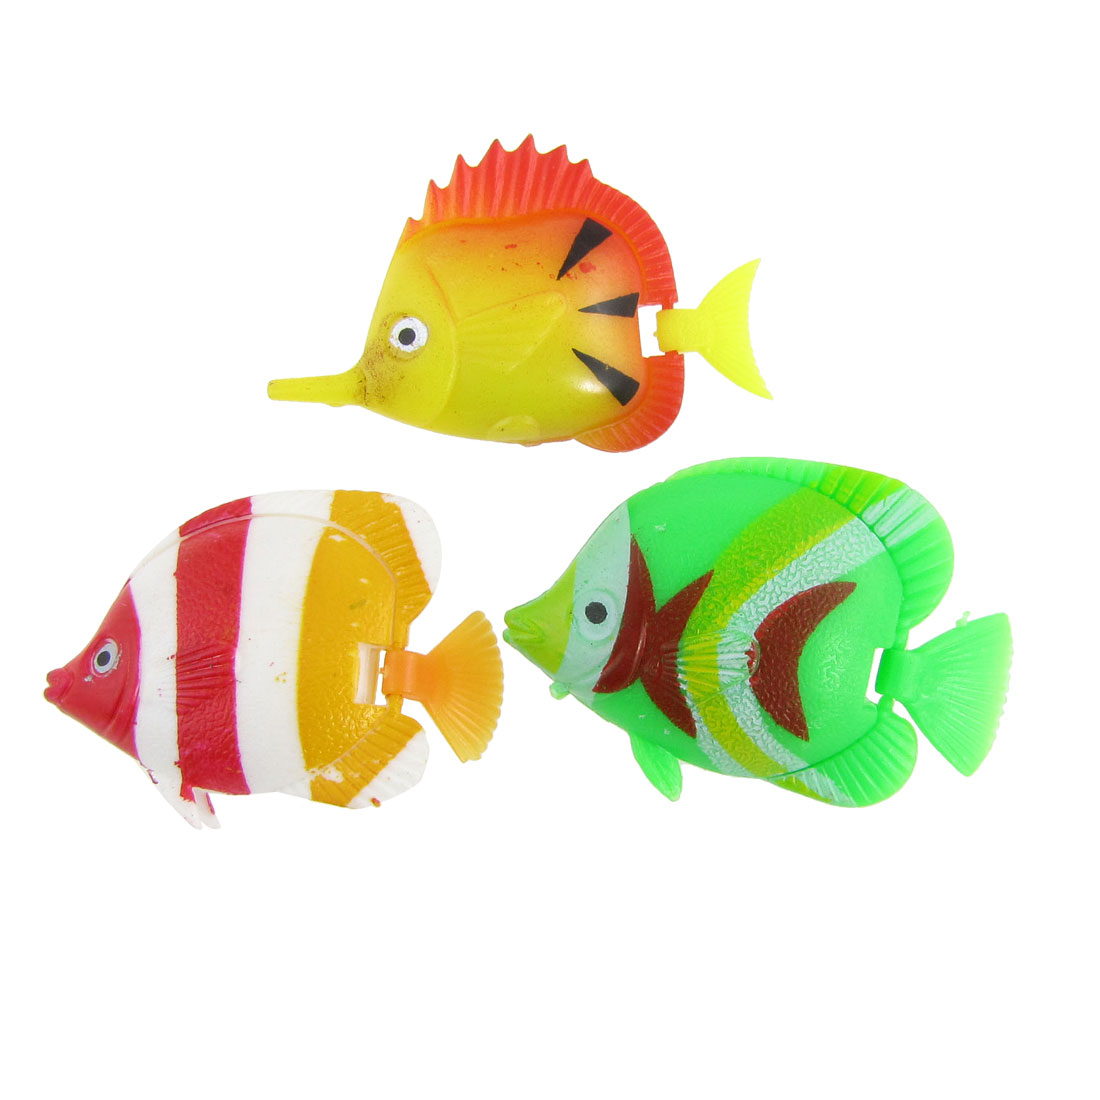 3 Pcs Colorful Plastic Tropical Fish Decor for Aquarium